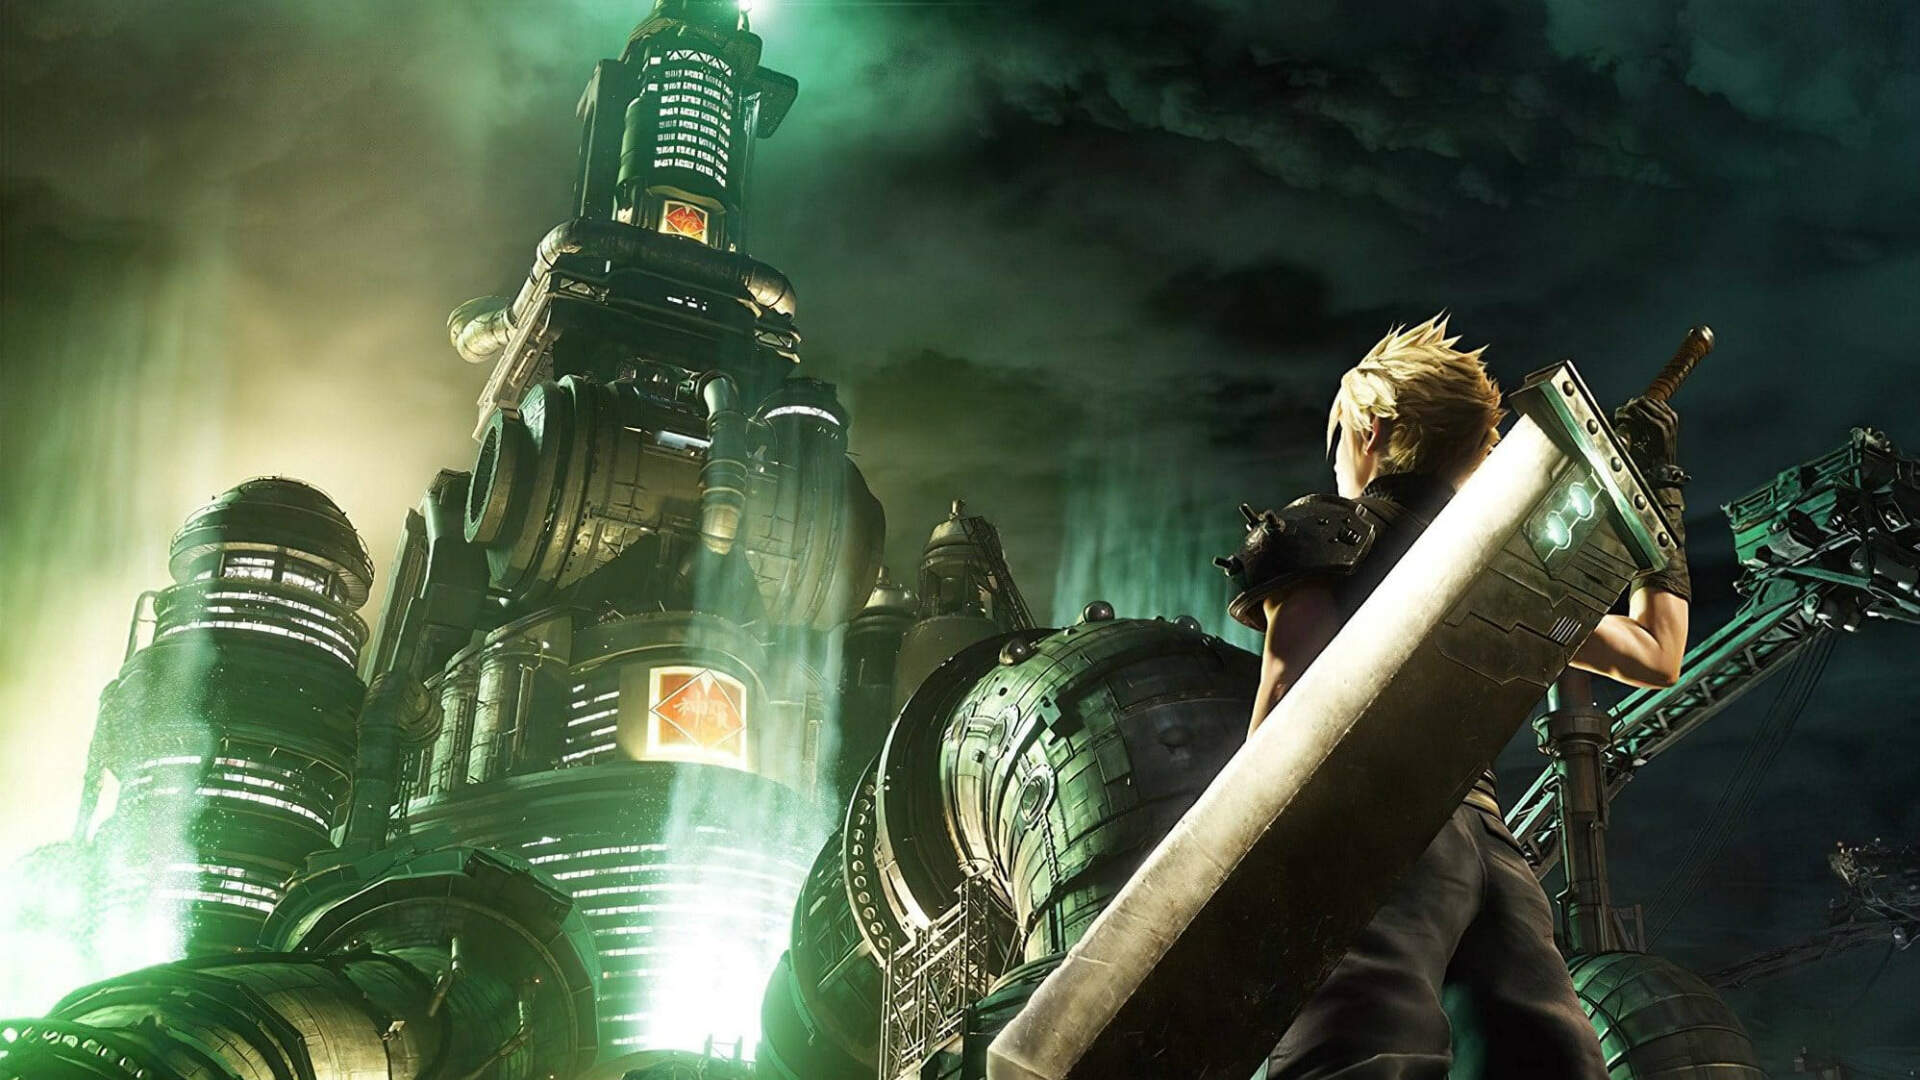 Final Fantasy 7 Remake: How to Get Back to the Sewers